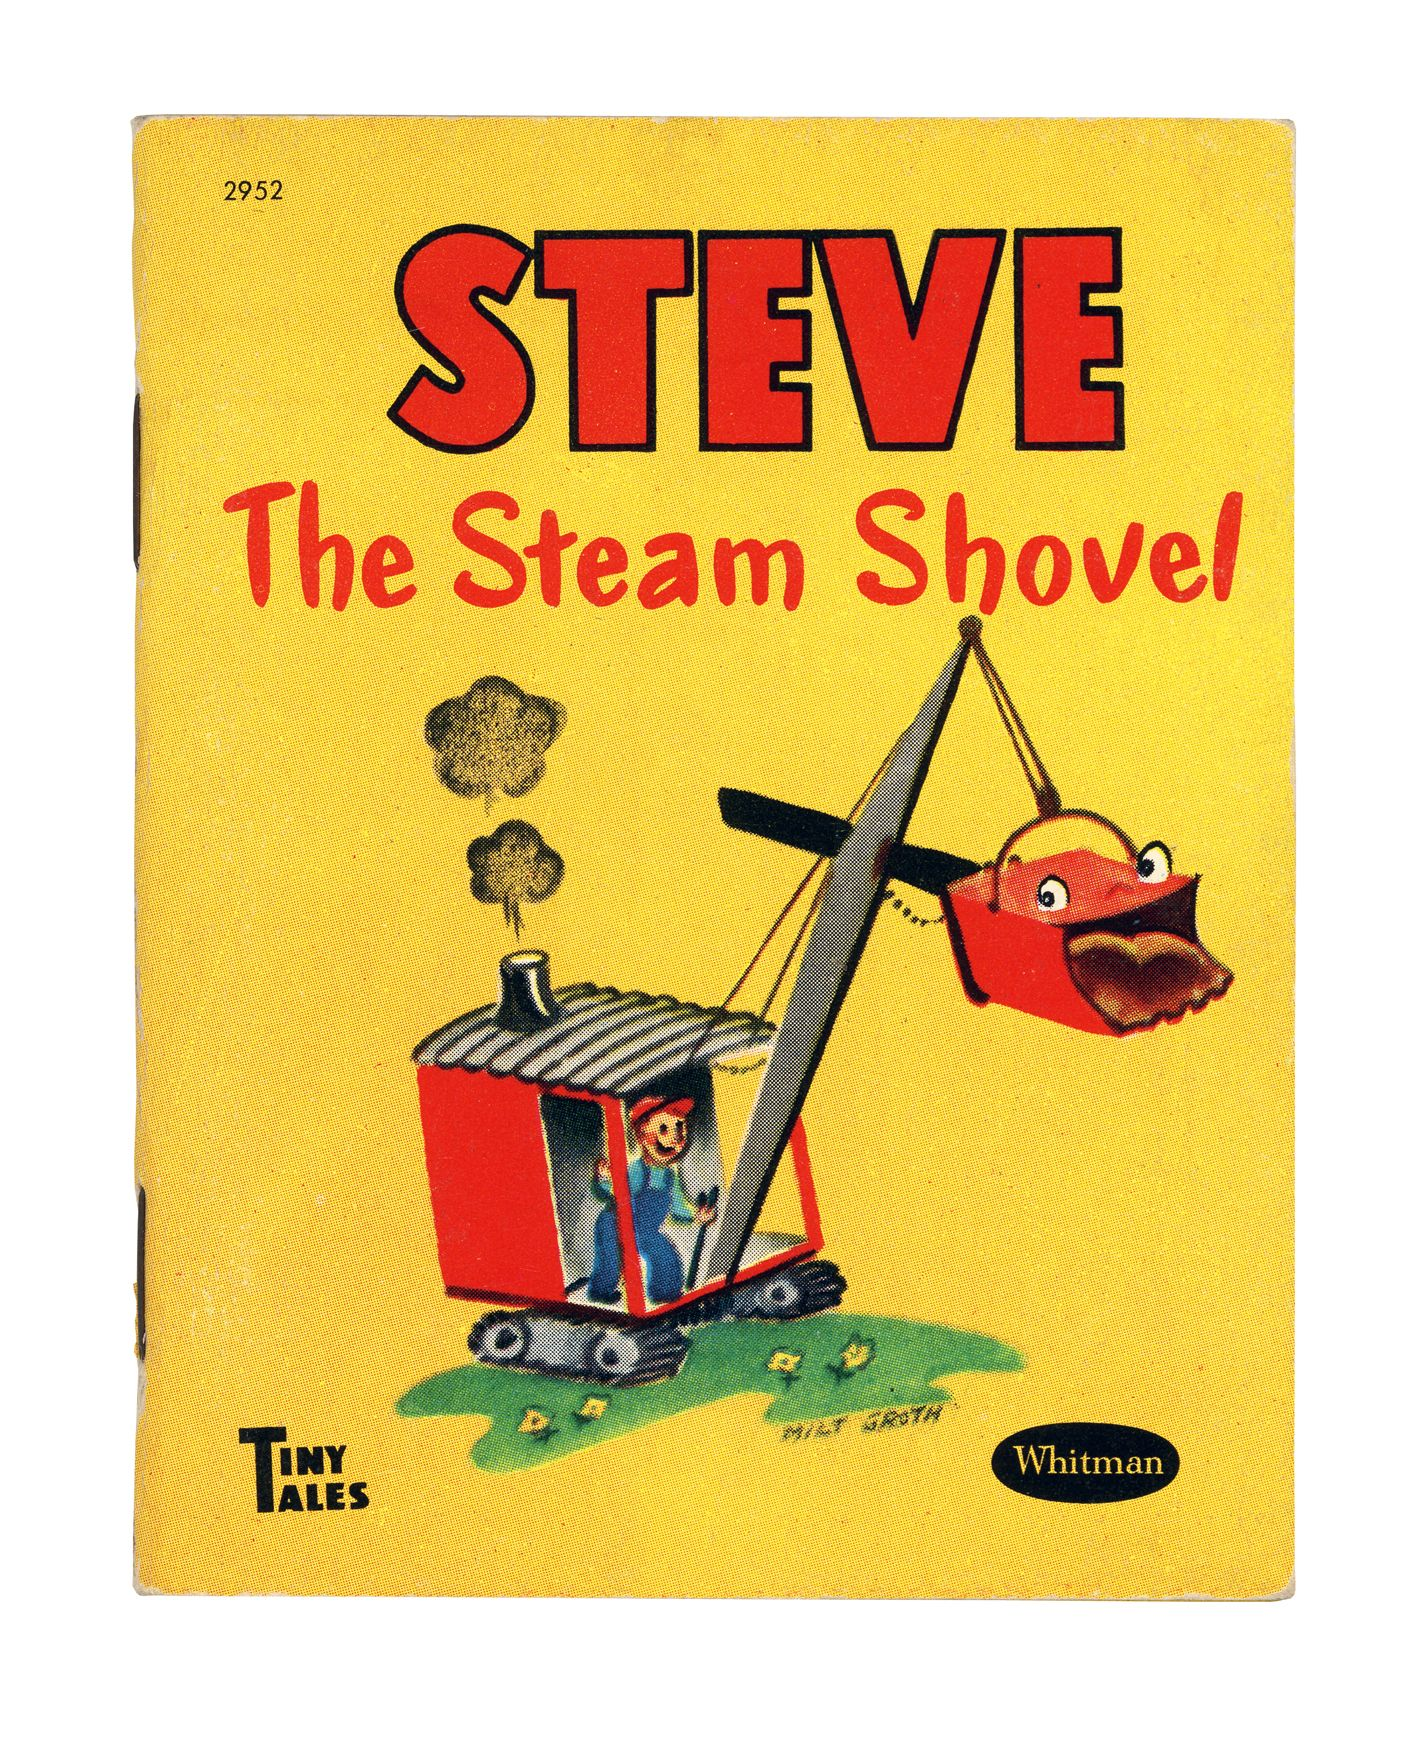 Whitman hot wheels coloring book - Steve The Steam Shovel Vintage Tiny Tales Whitman S Children S Book Series